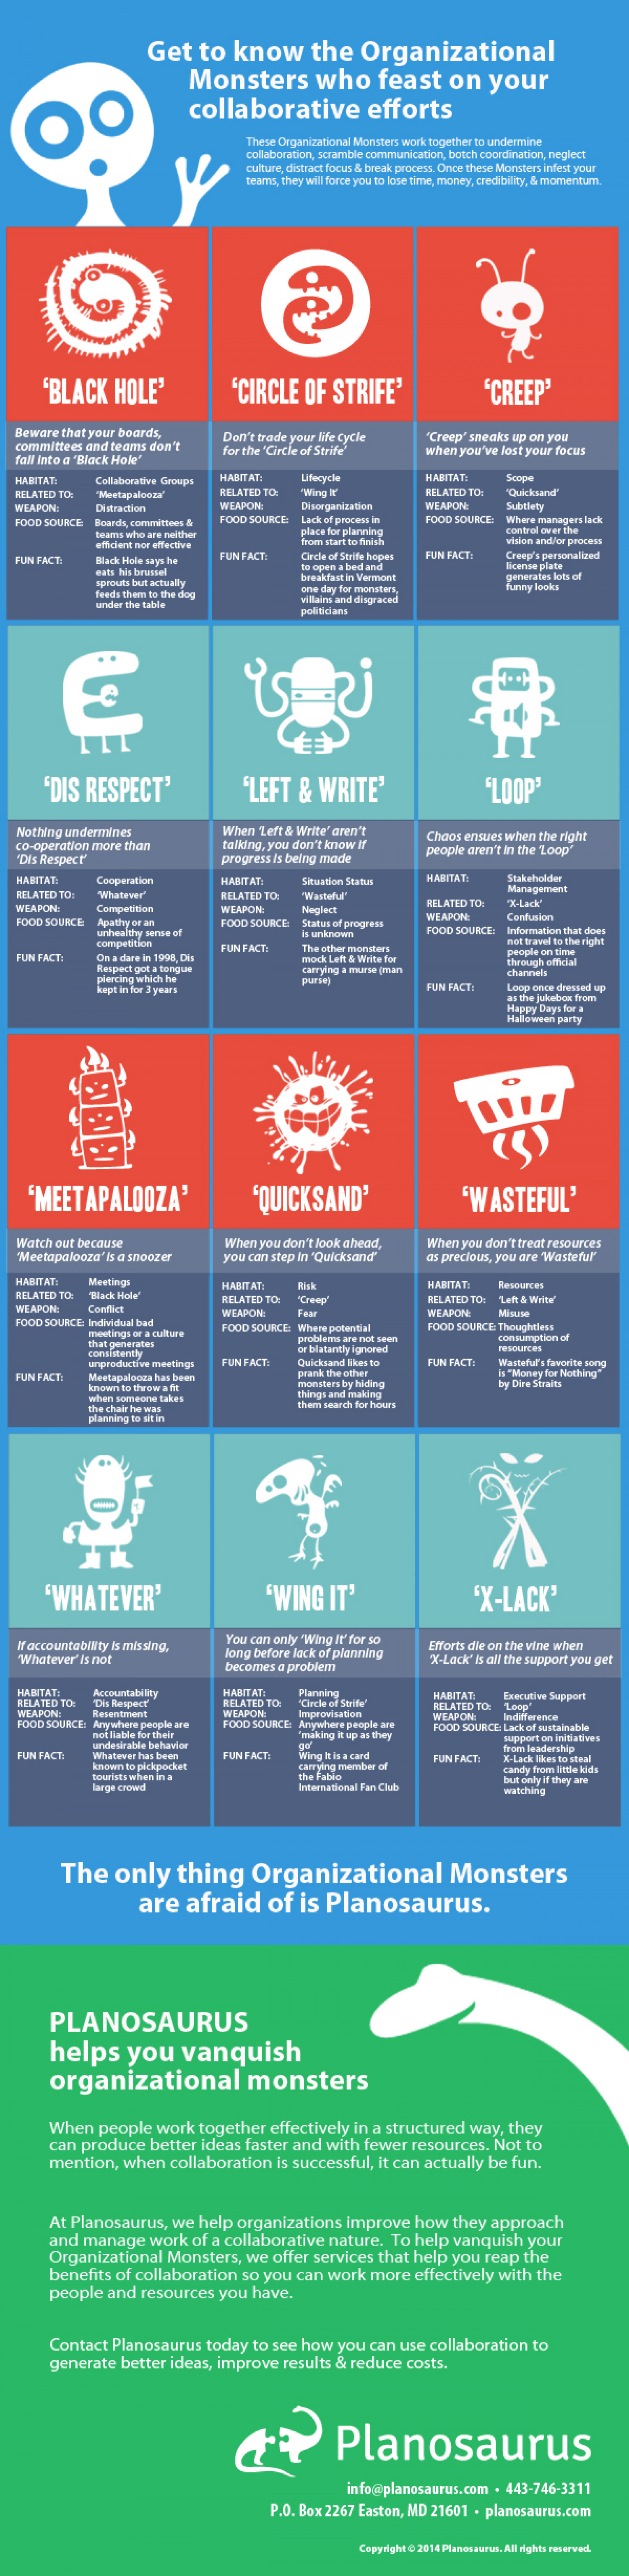 Get to Know the Organizational Monsters Who Feast on Your Collaborative Efforts Infographic